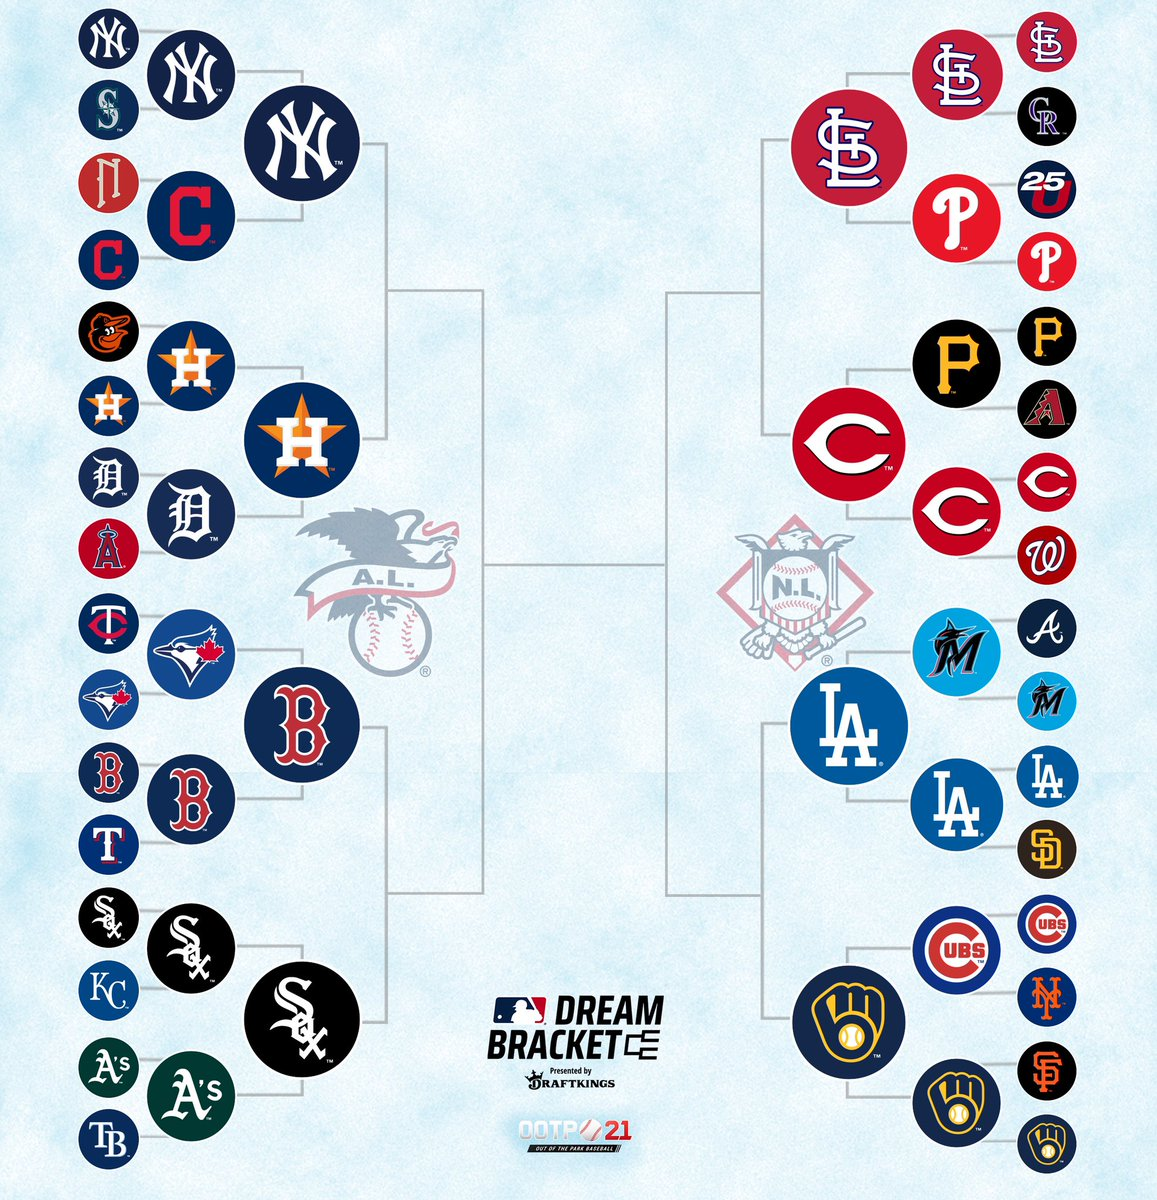 Mlb Communications On Twitter The Mlb Dream Bracket Presented By Draftkings Will Continue Today At 3 P M Et With The Quarterfinal Matchups From The American League Side Of The Bracket Https T Co 1pj7hiydqn